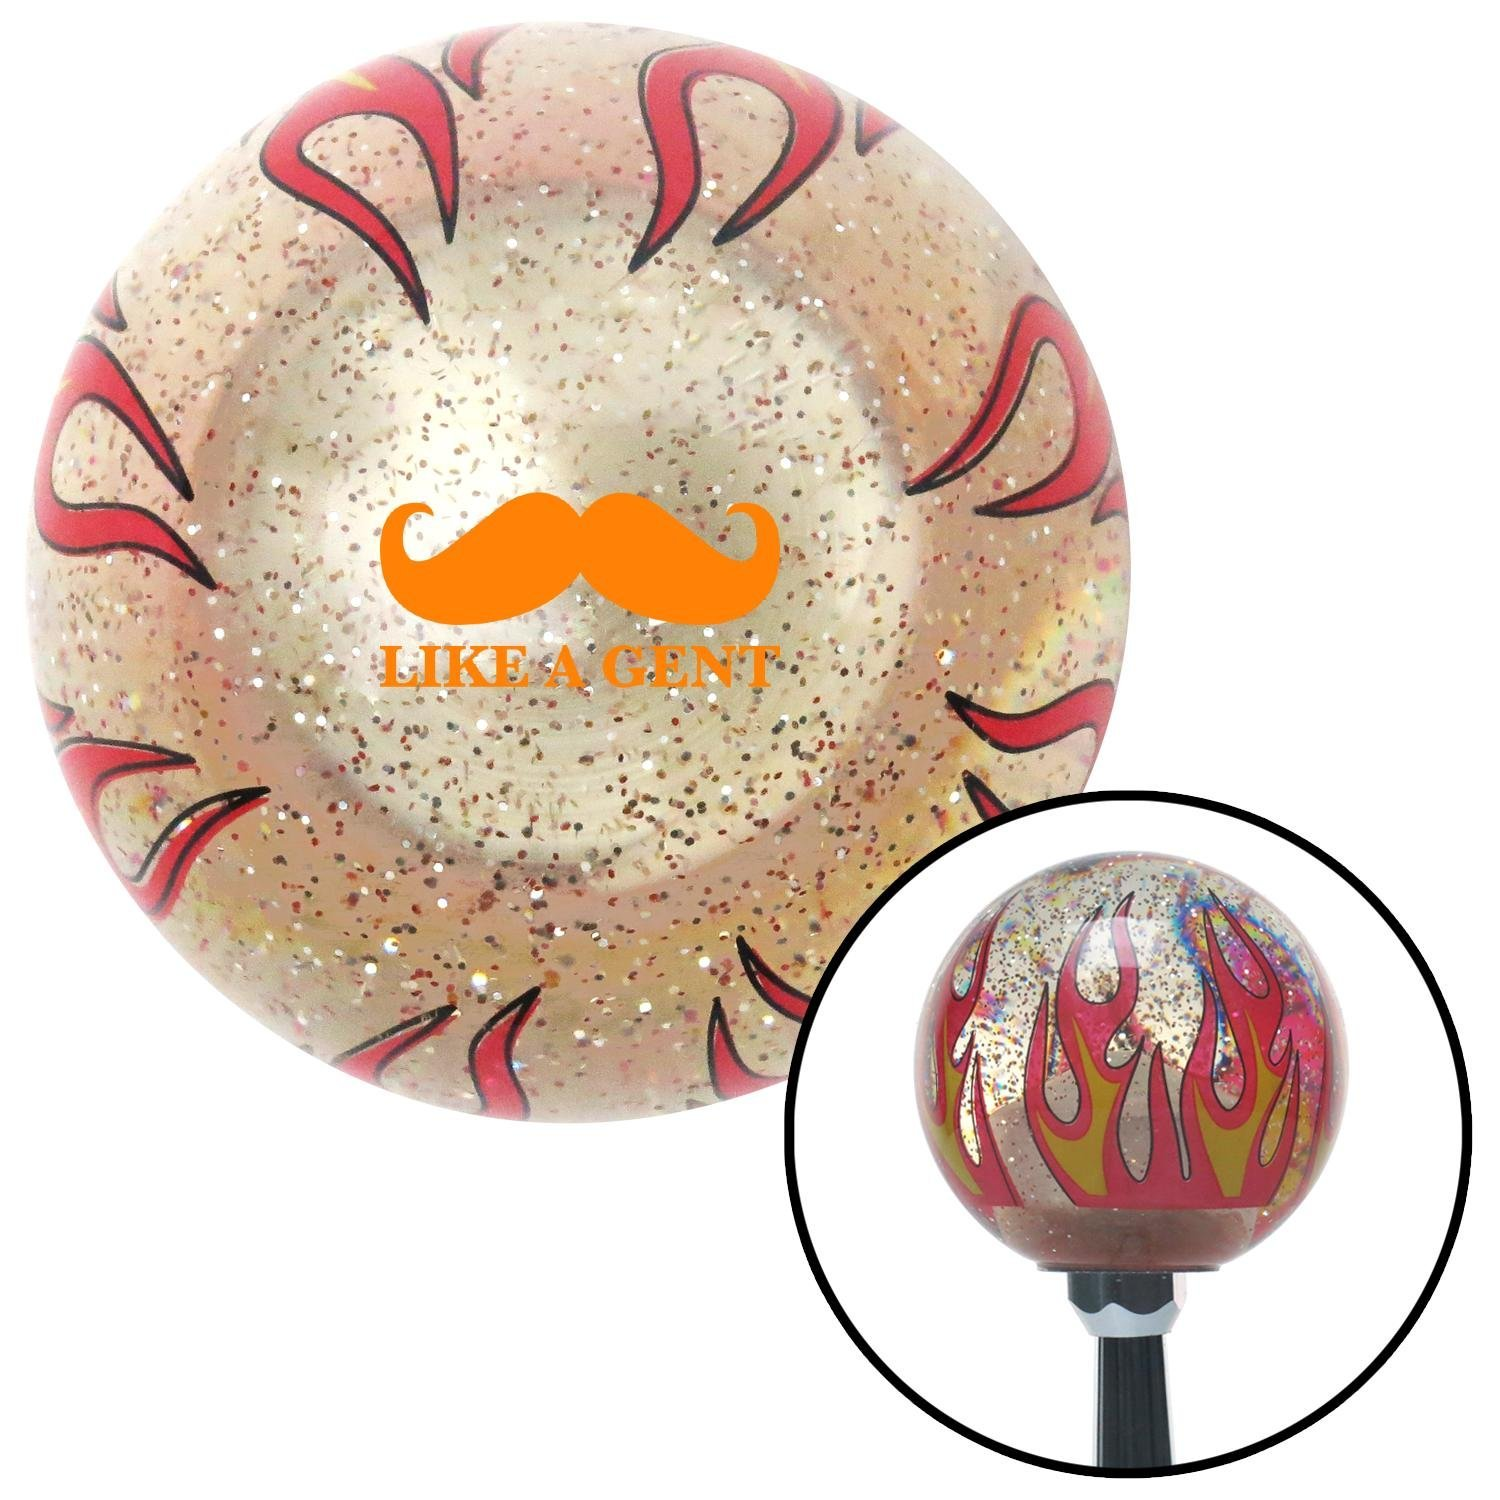 American Shifter 58392 Red Metal Flake Shift Knob with 16mm x 1.5 Insert Yellow Officer 09 - Lt. General